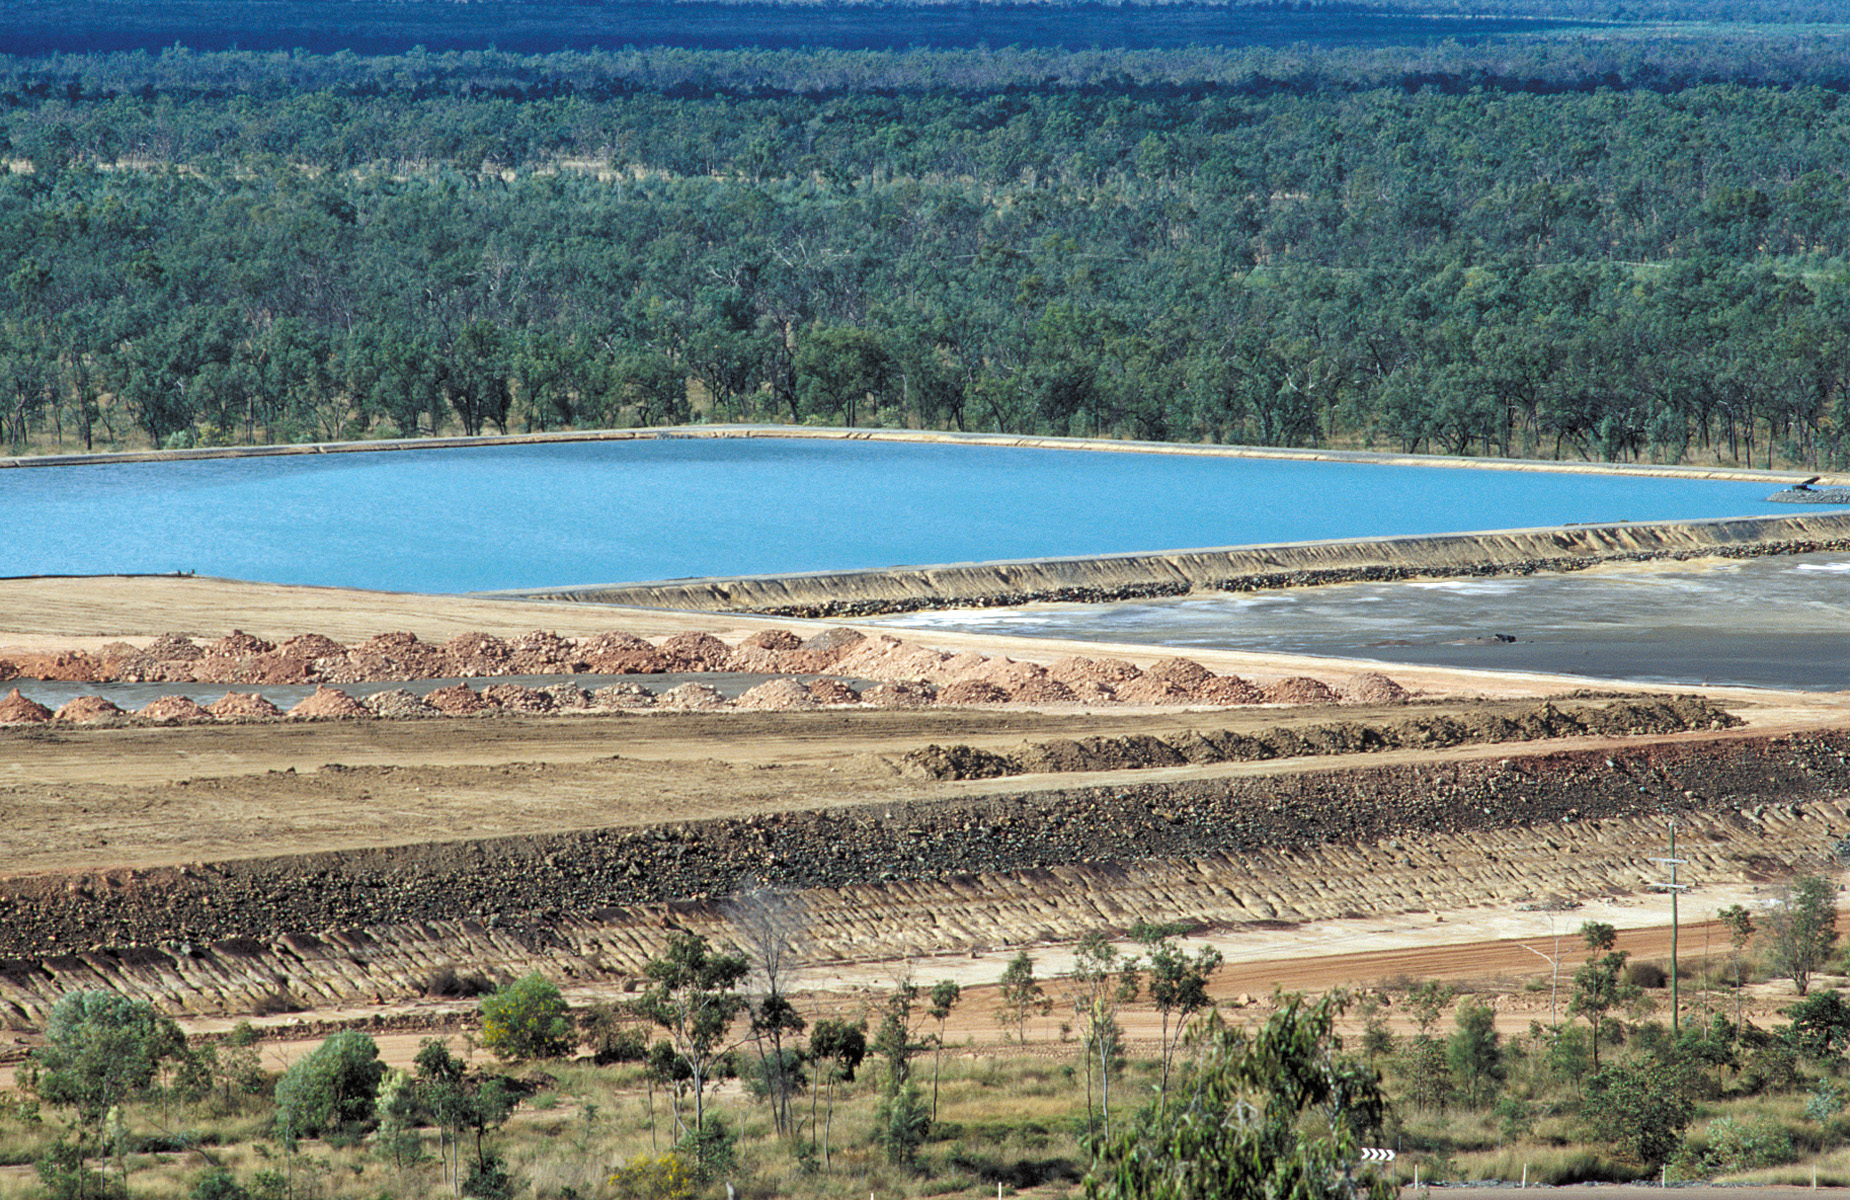 Rural landscape showing copper talings mine and body of water.